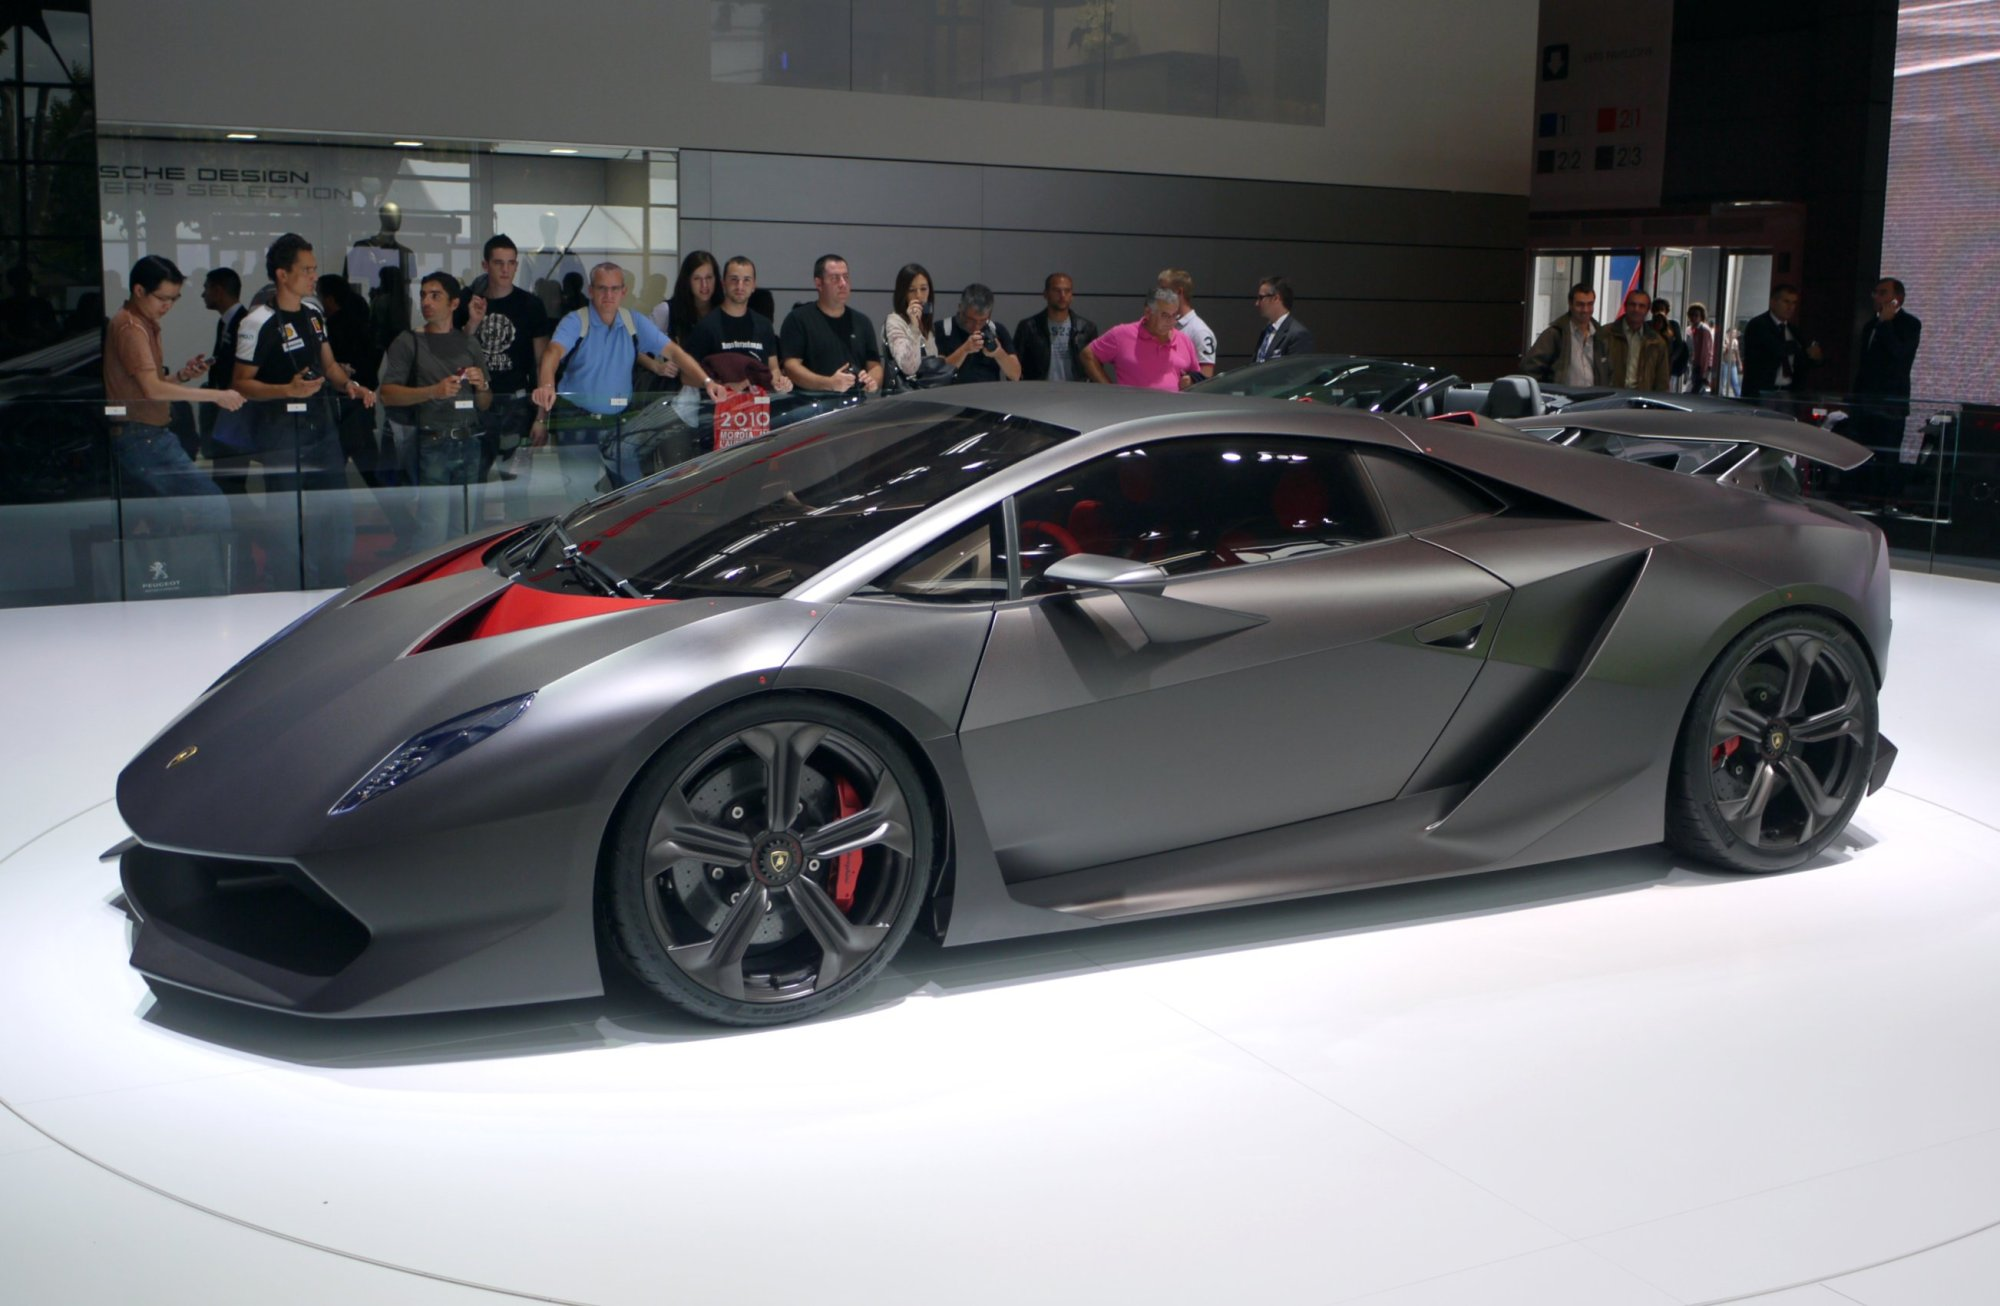 hight resolution of the sesto elemento concept on display at the 2010 paris motor show